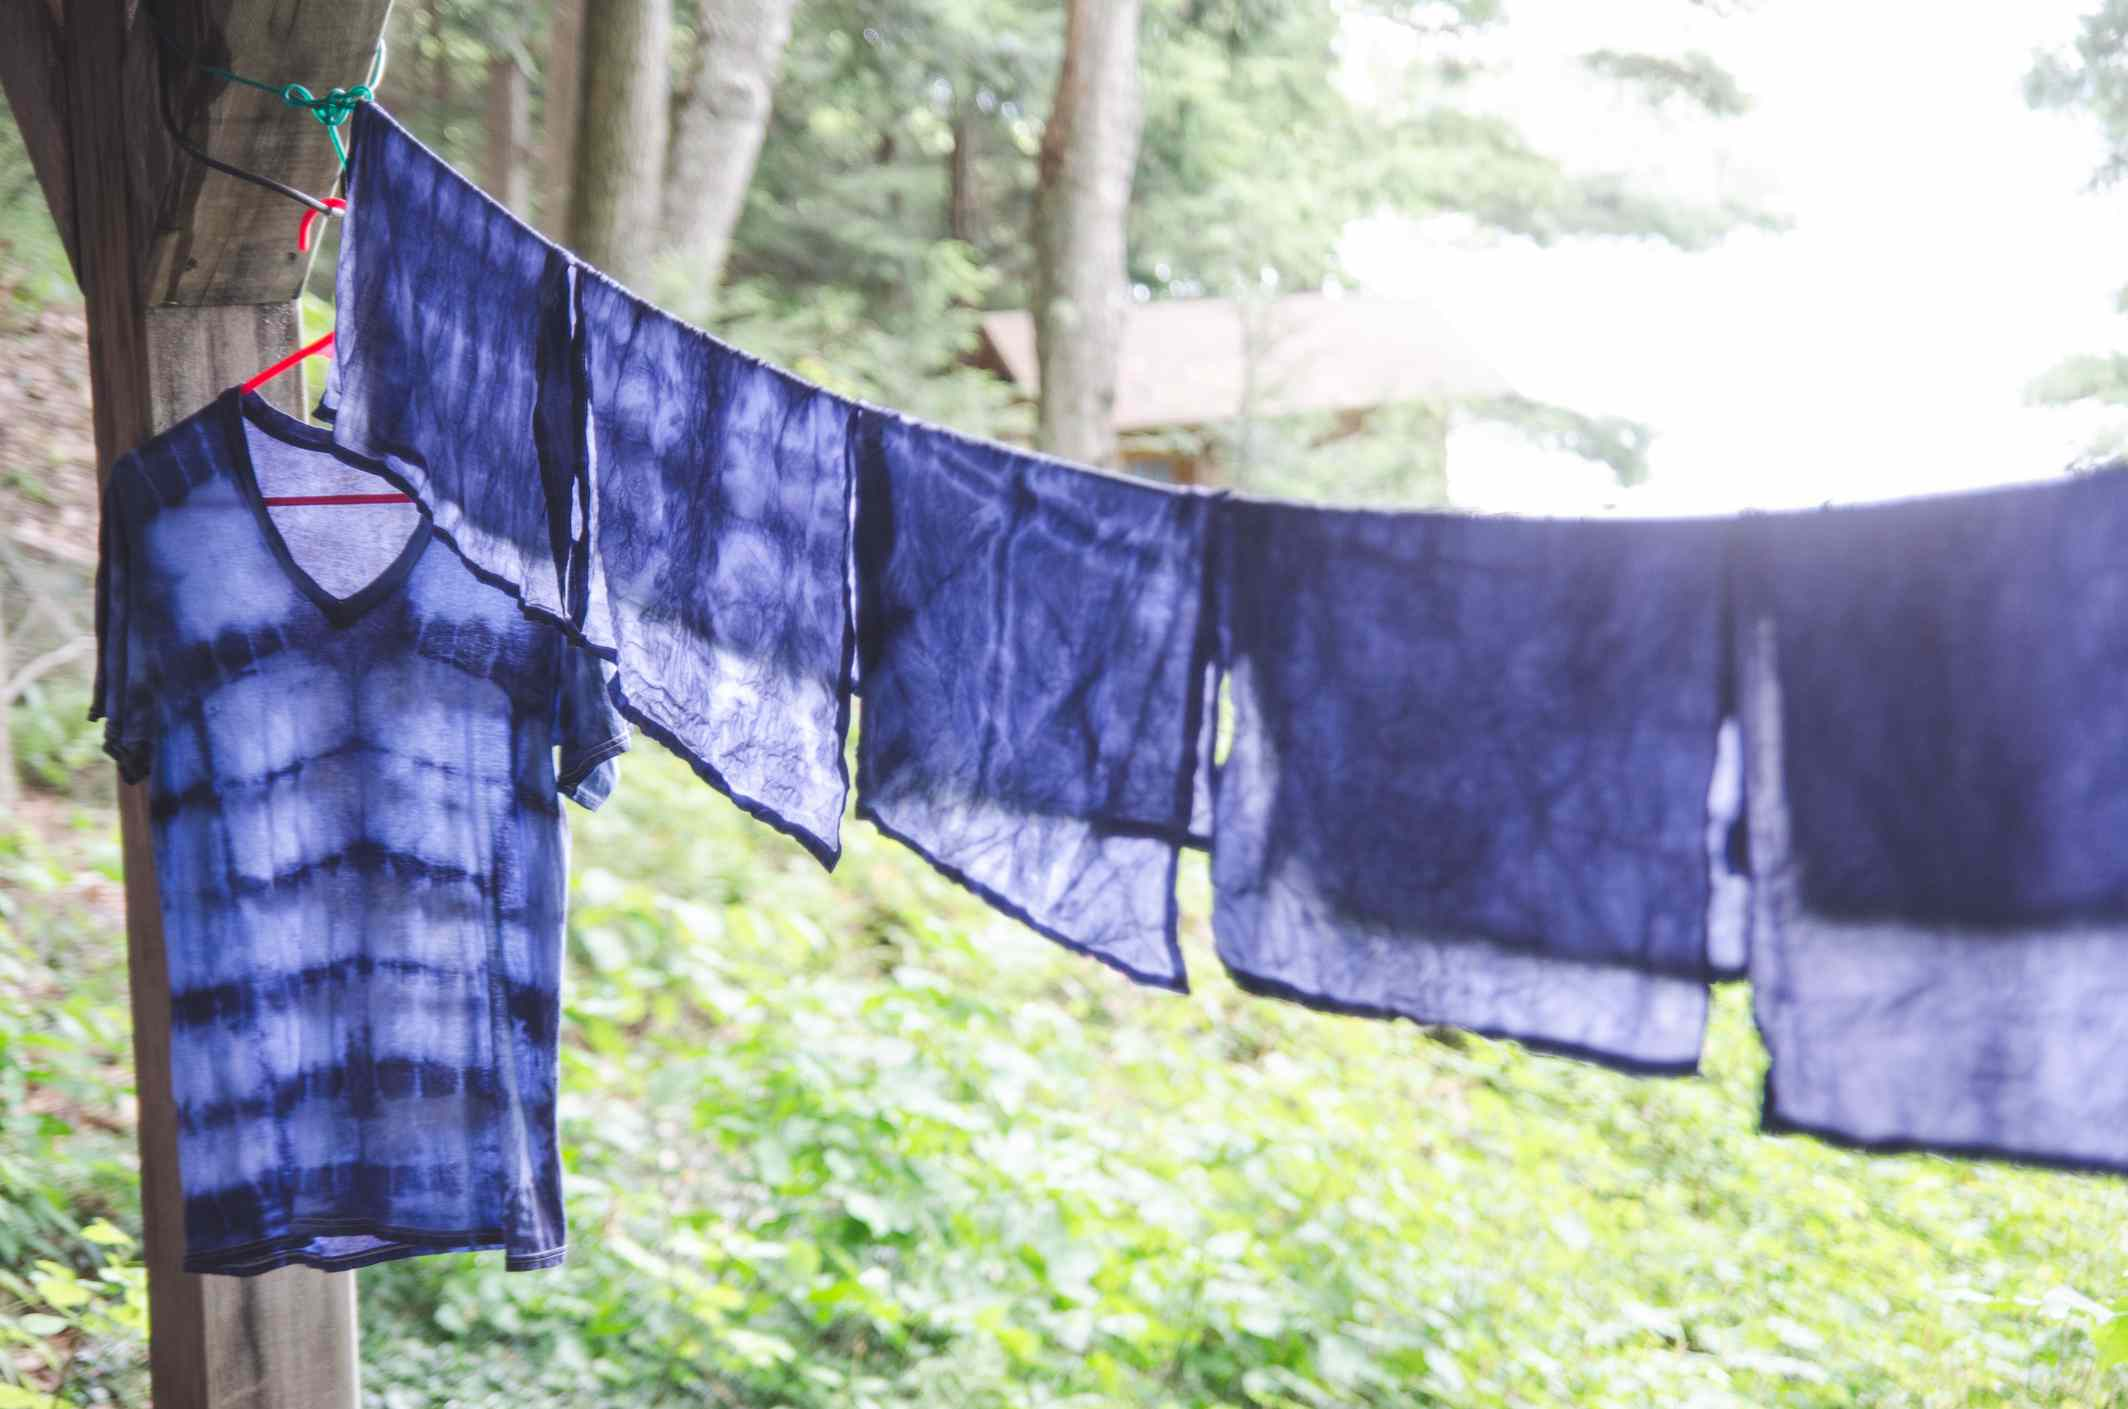 Indigo tie dyed t-shirt and napkins hang on clothesline outdoors